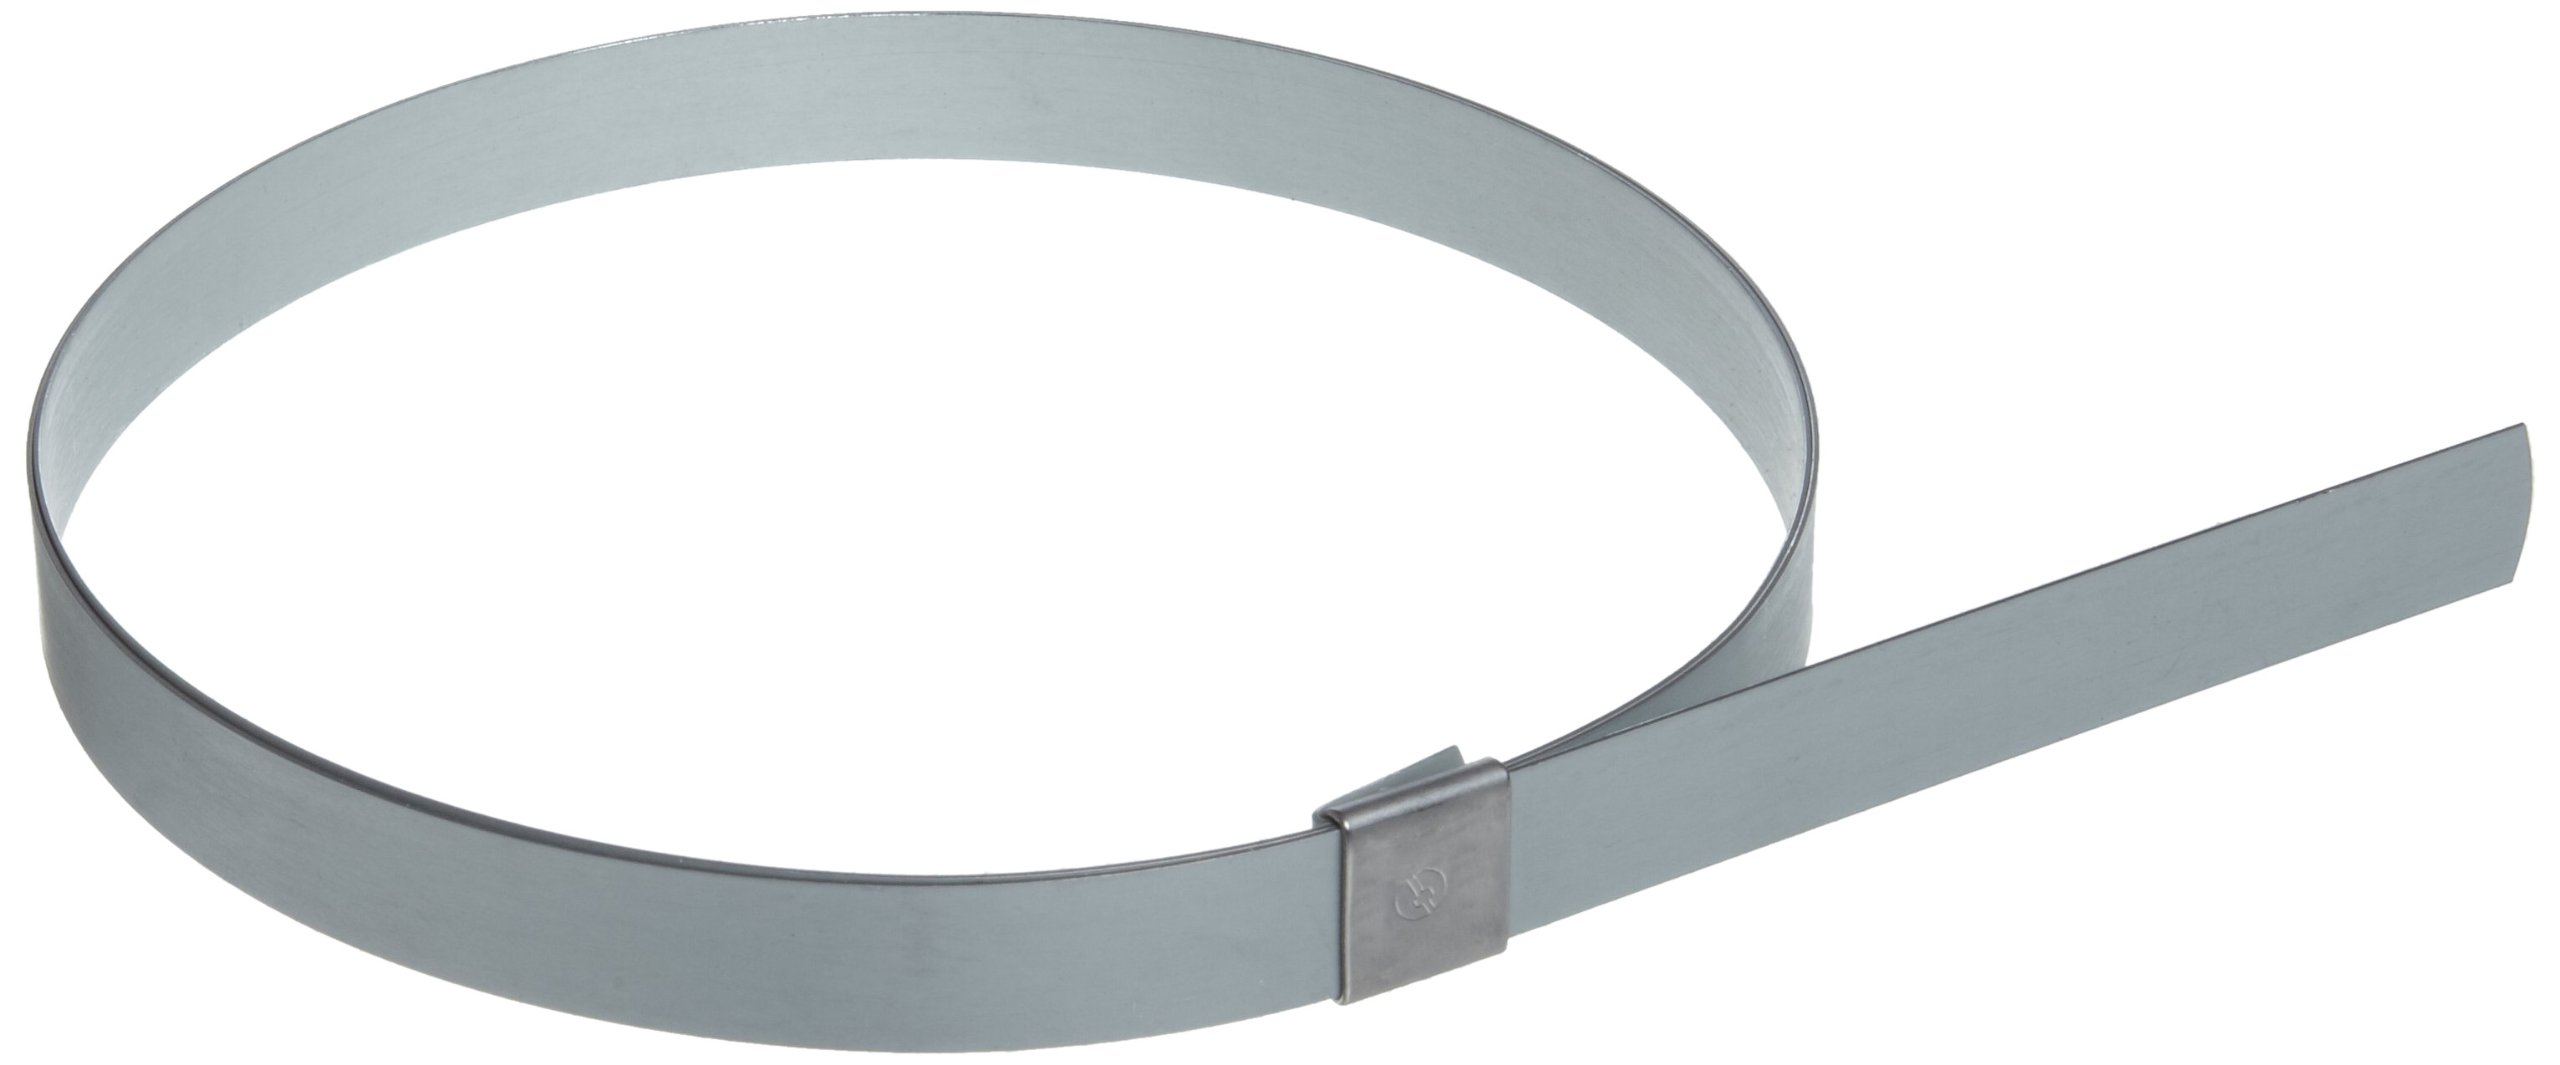 BAND-IT CP2499 5/8 Wide x 0.025'' Thick 6'' Diameter, Galvanized Carbon Steel Center Punch Clamp (25 Per Box)